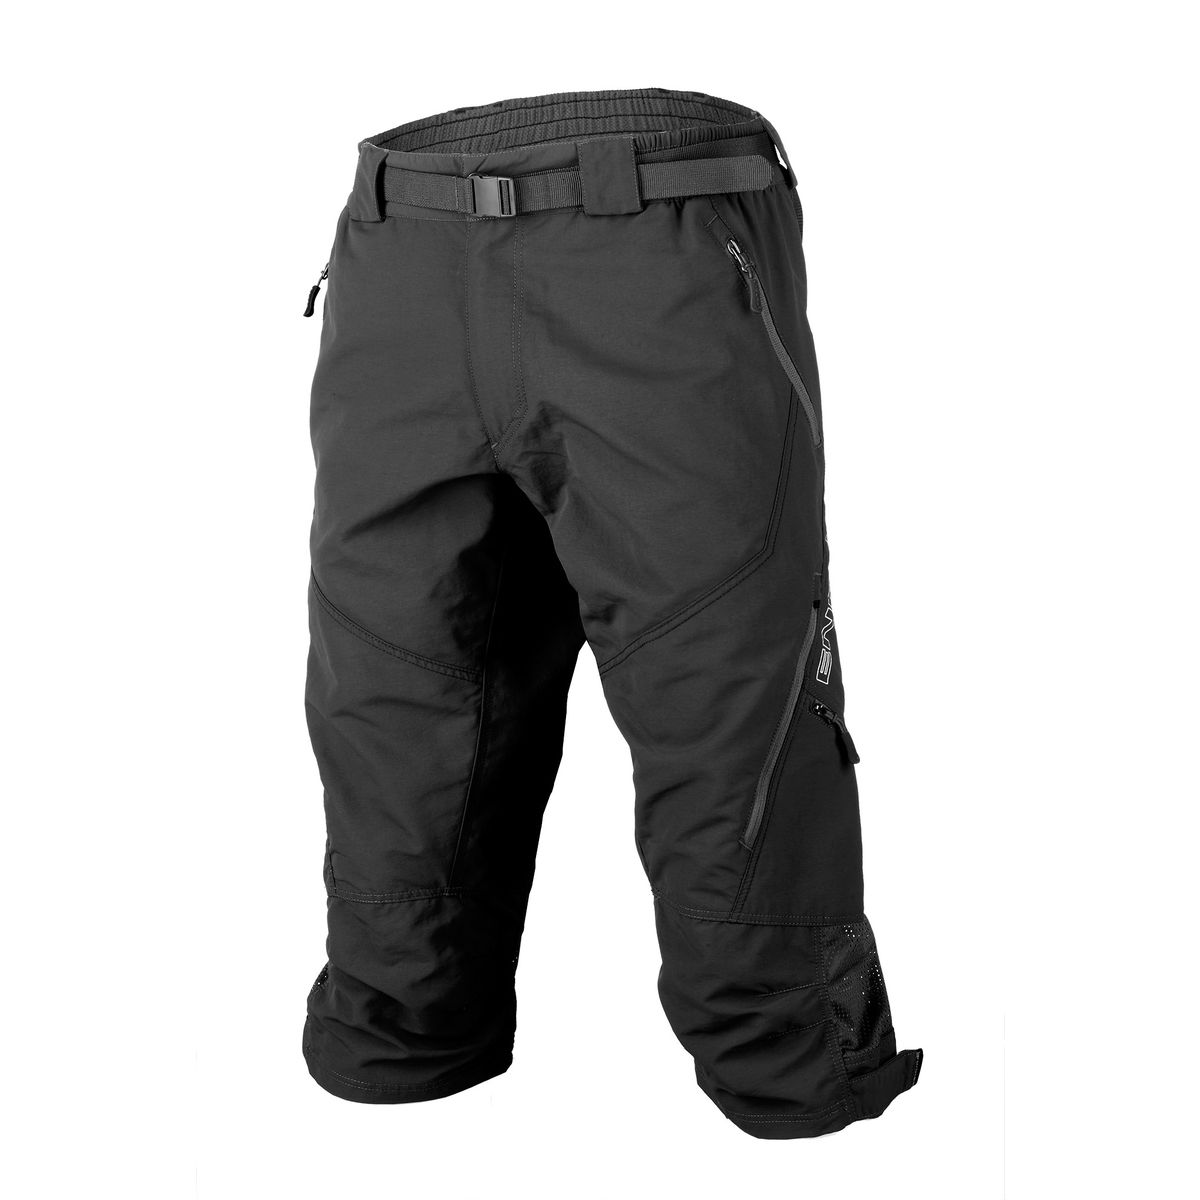 HUMMVEE ¾ SHORT II cycling trousers incl. inner pants